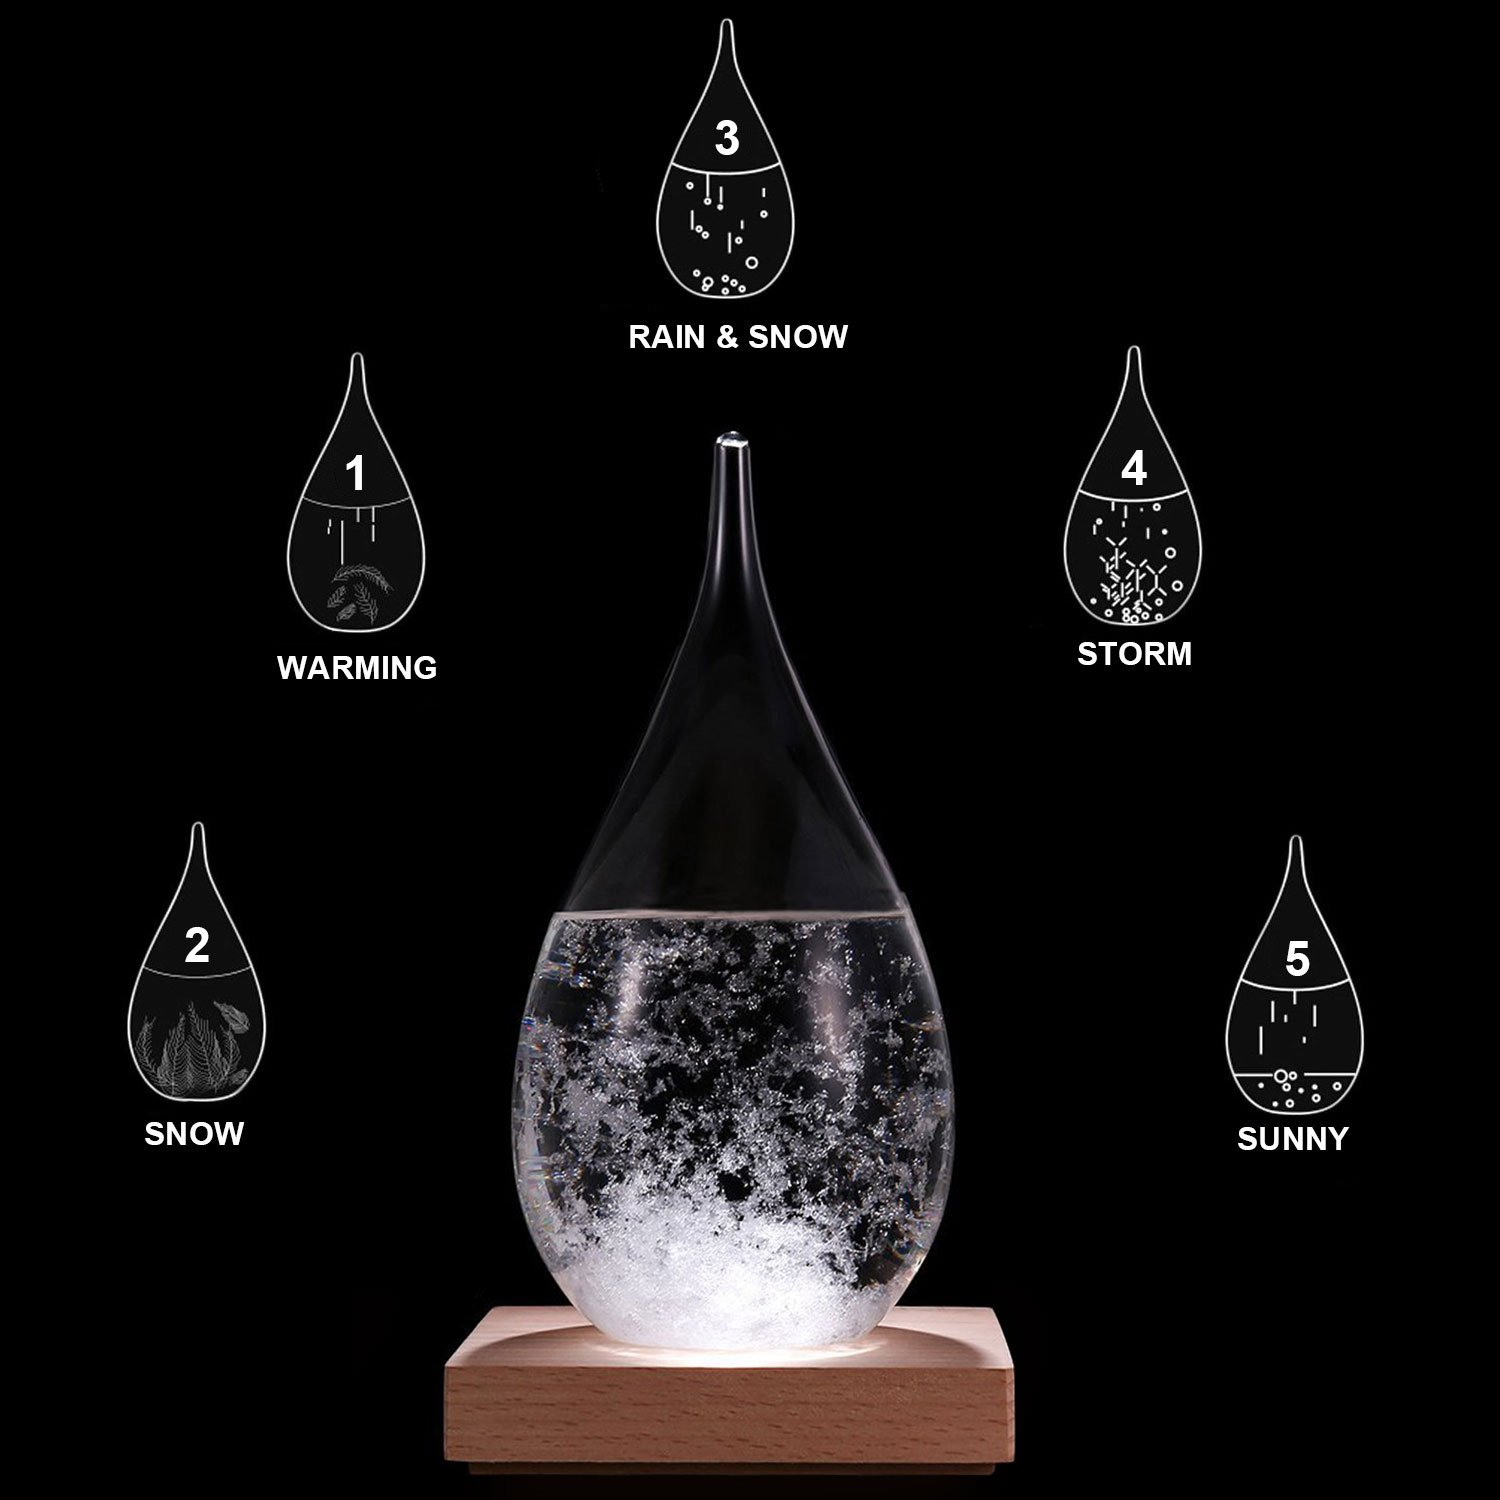 Amymami Storm Glass Weather Predictor, Christmas Decorations Gift,Creative Stylish Weather Station Forecaster Storm Glass Bottles Barometer with Wood Base, 6.8X 3.4X 3.4 inches by Amymami (Image #4)